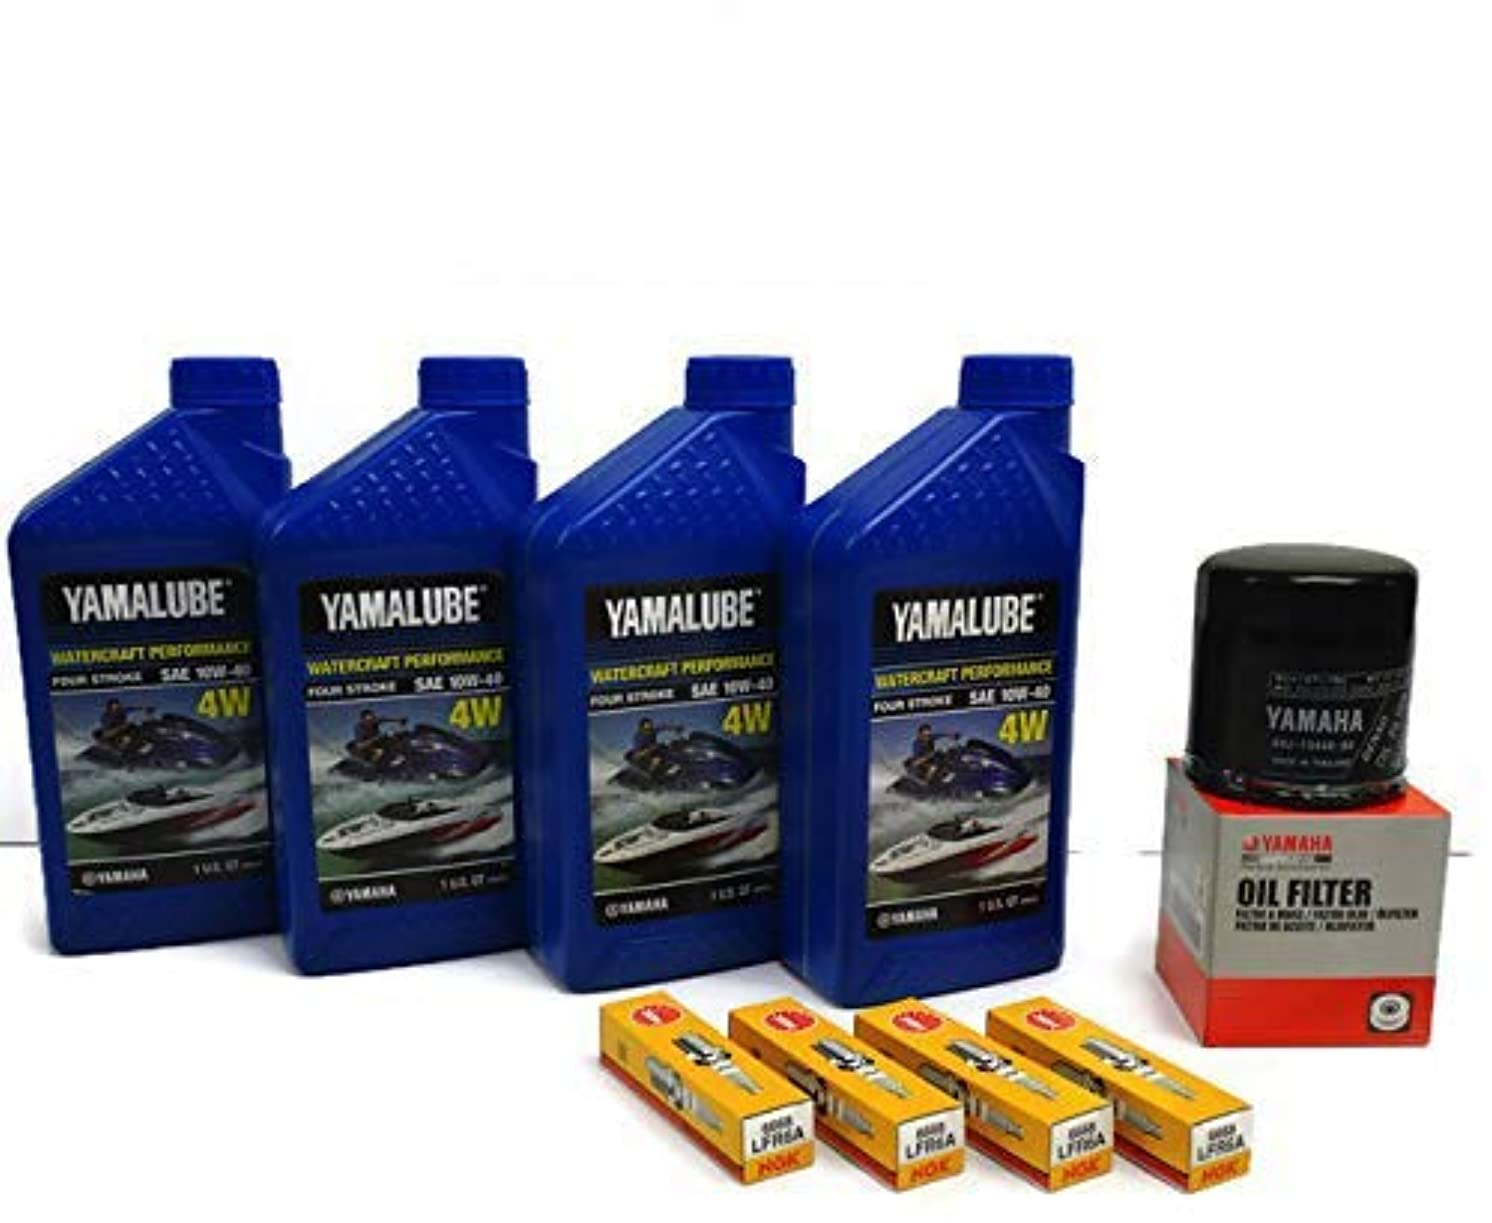 YAMAHA SVHO 1.8L WaveRunner Oil Change Kit w/Filter FX-SVHO FZR-SVHO FZS-SVHO GP1800 GP1800R 69J-13440-03-00 NGK Spark Plugs Maintenance Kit